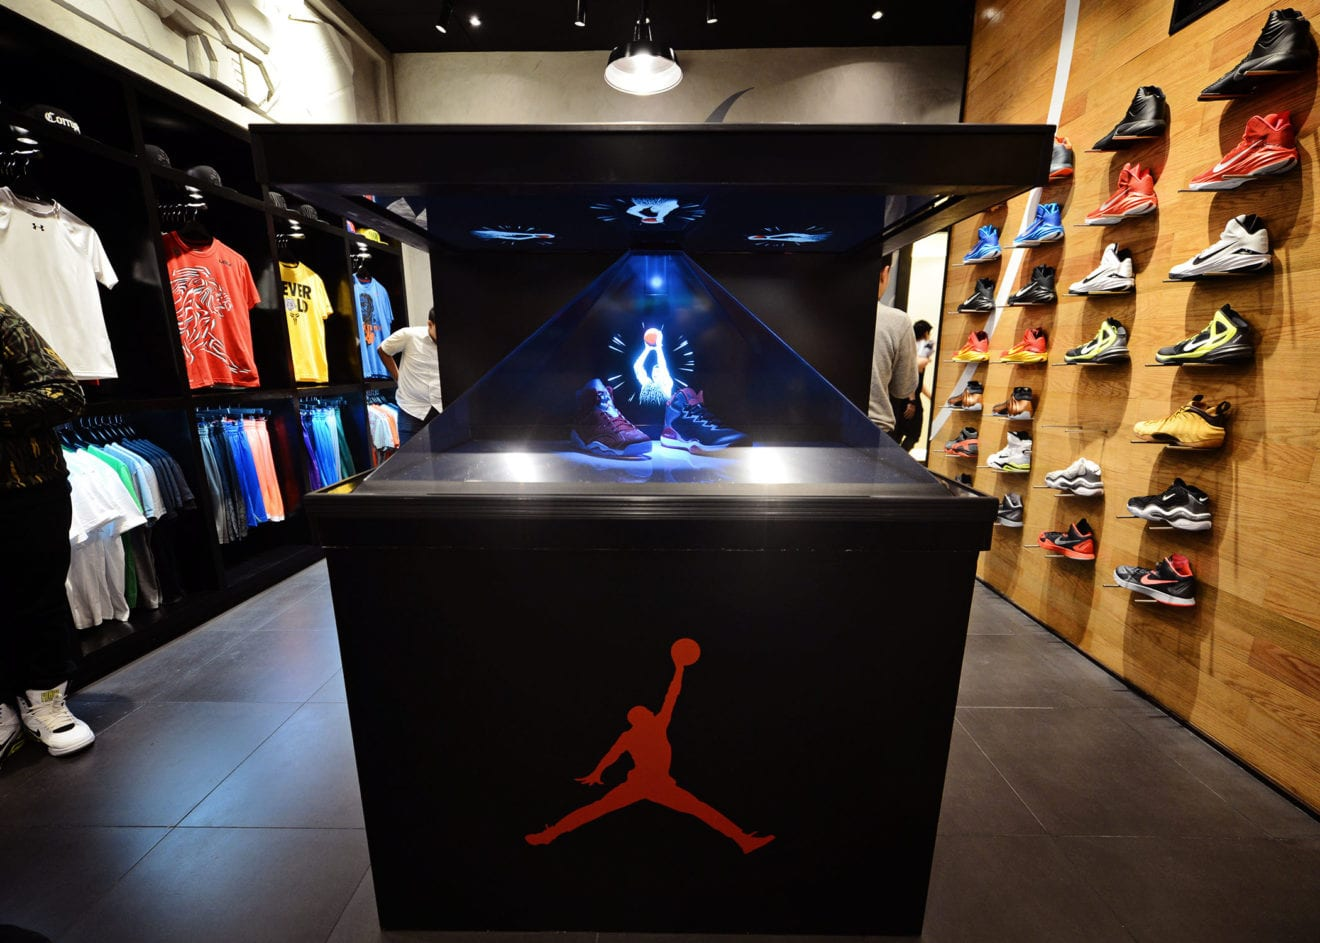 A New Air Jordan Store Has Just Opened Up In Hong Kong | Retail News Asia